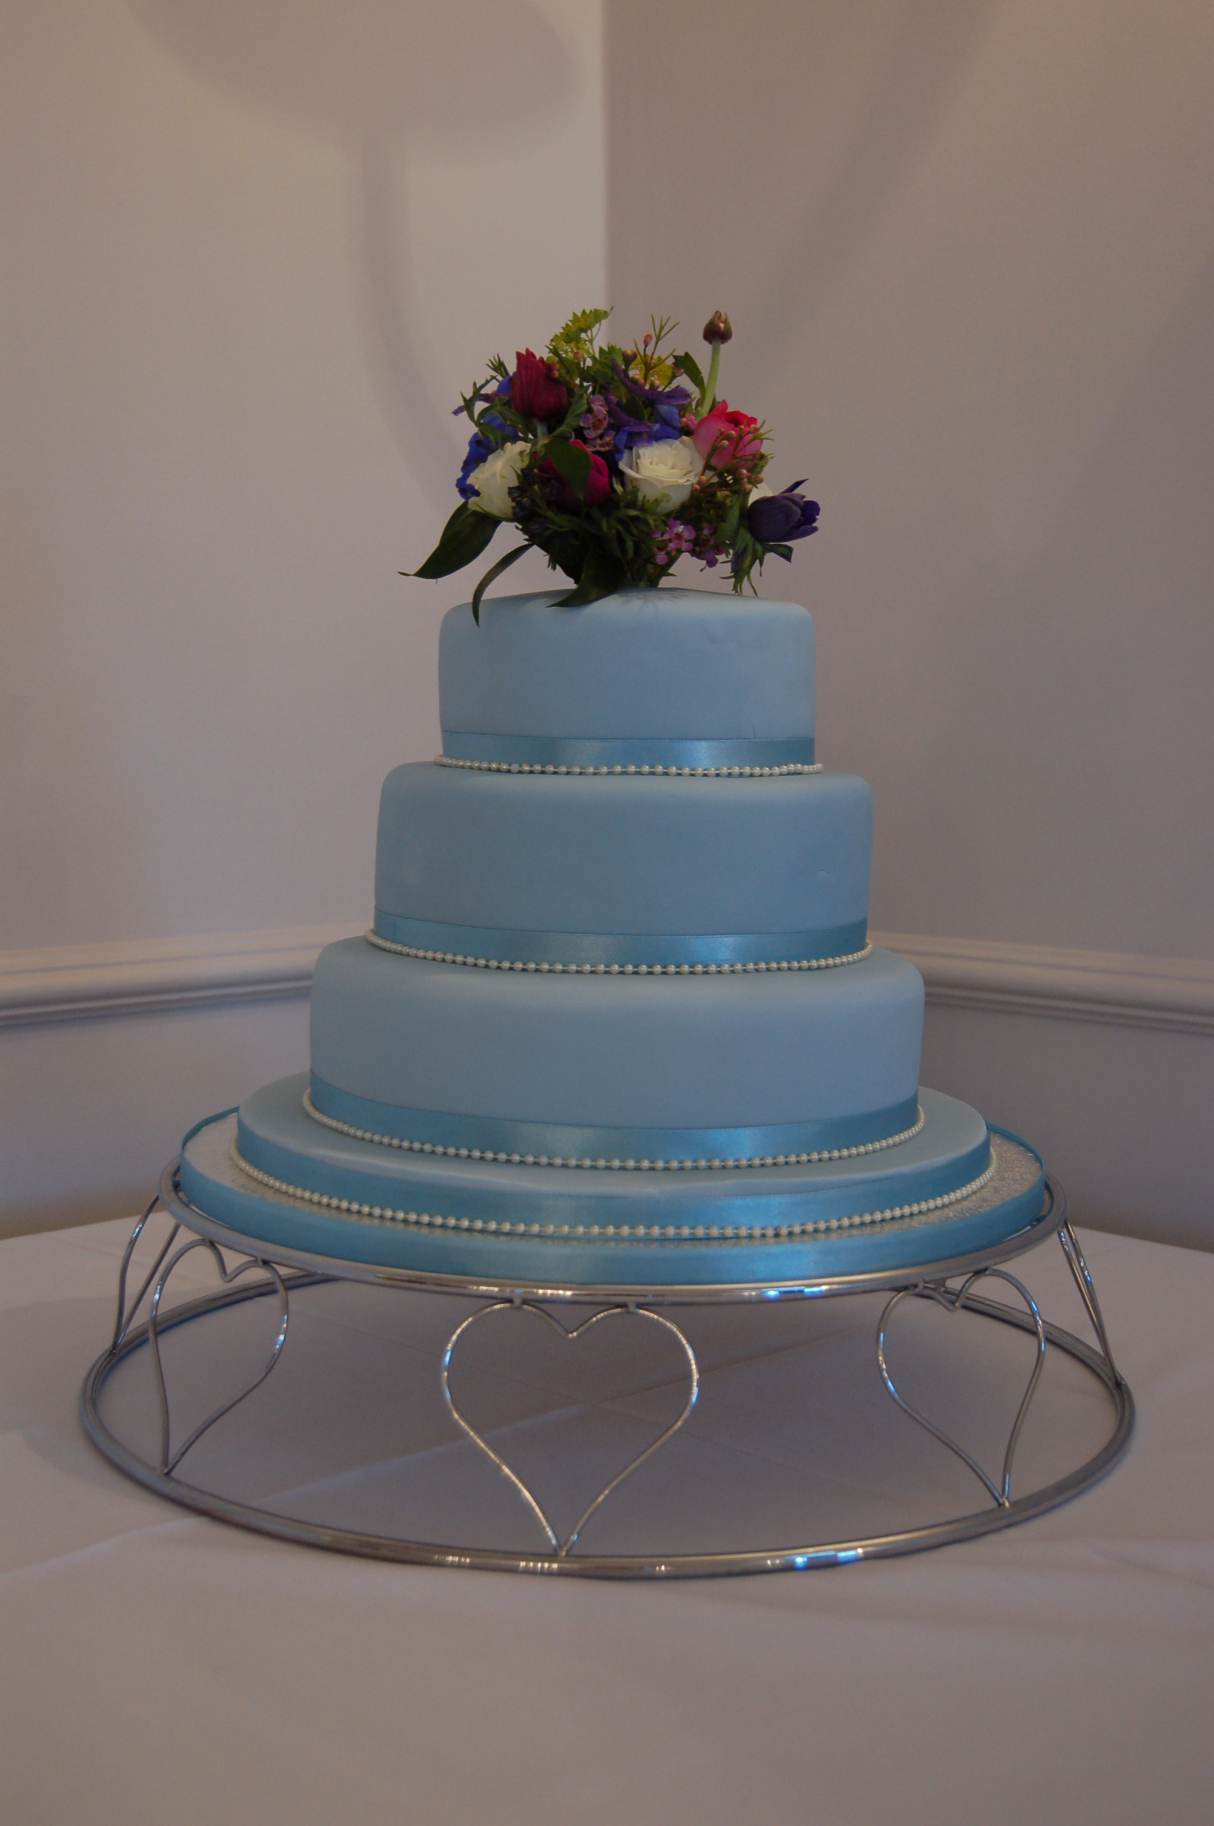 Lowri was delighted with this soft shade of blue accented with matching satin ribbon and tiny pearls